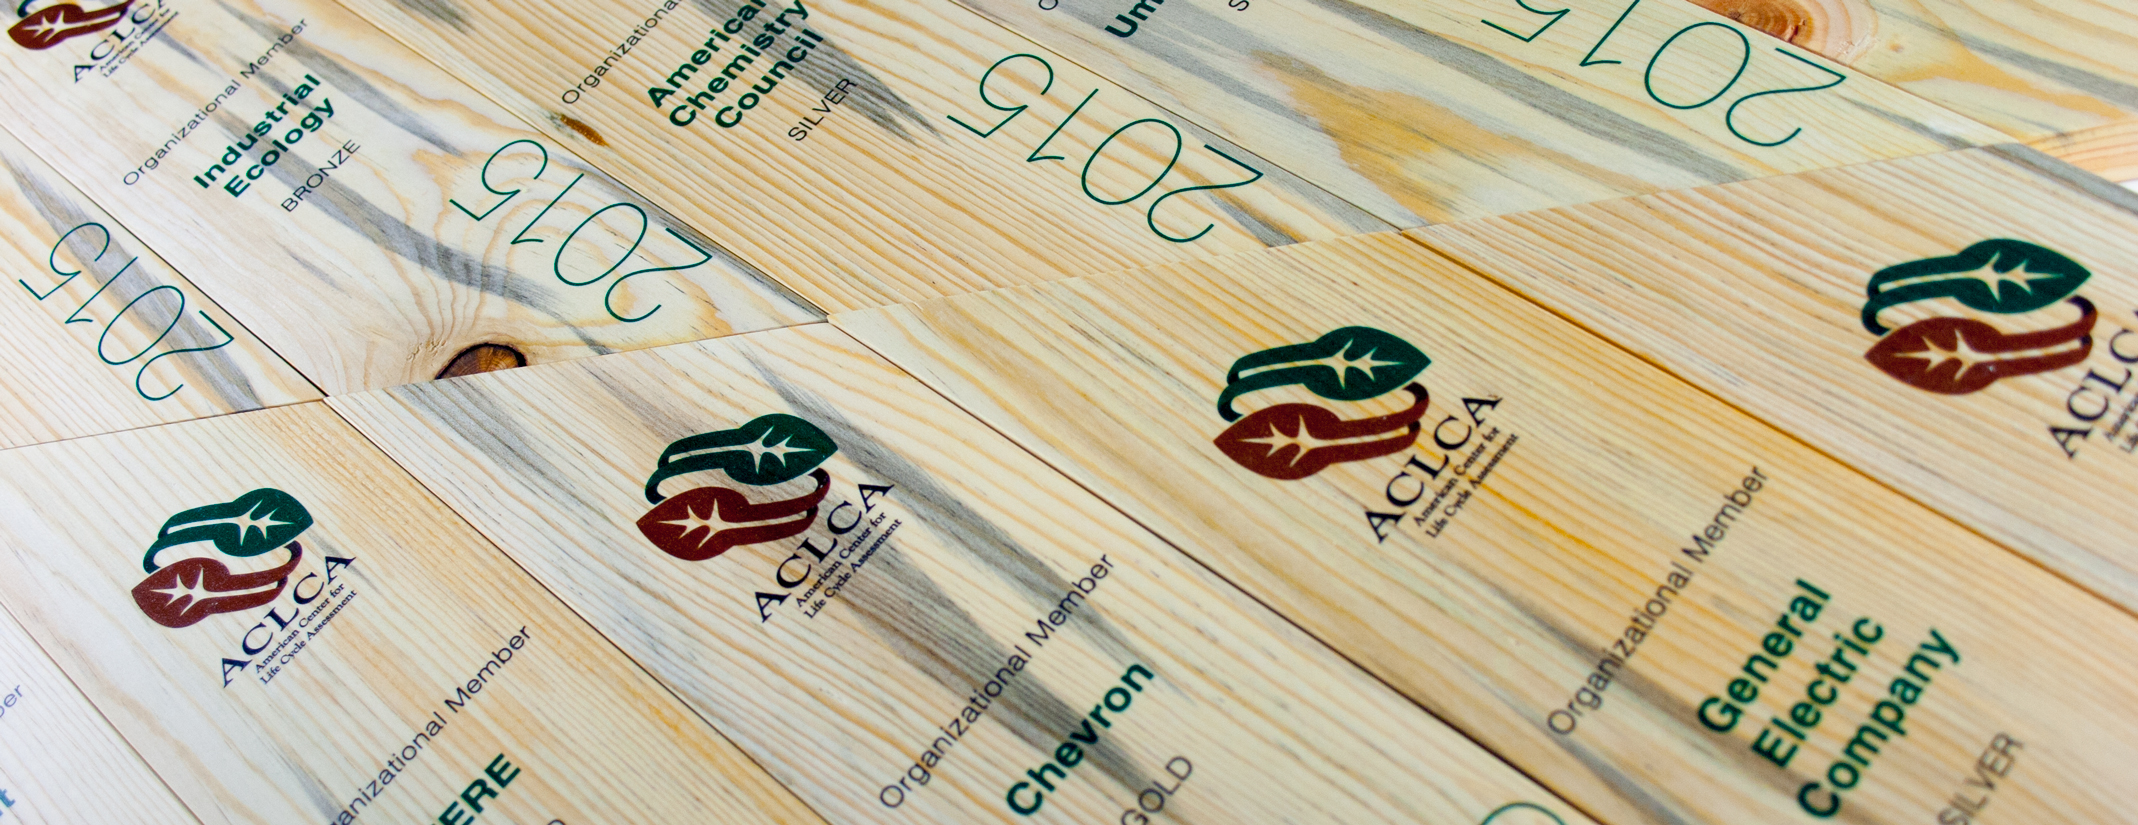 aclca - custom award using recovered pine beetle wood, eco-friendly & sustainable.